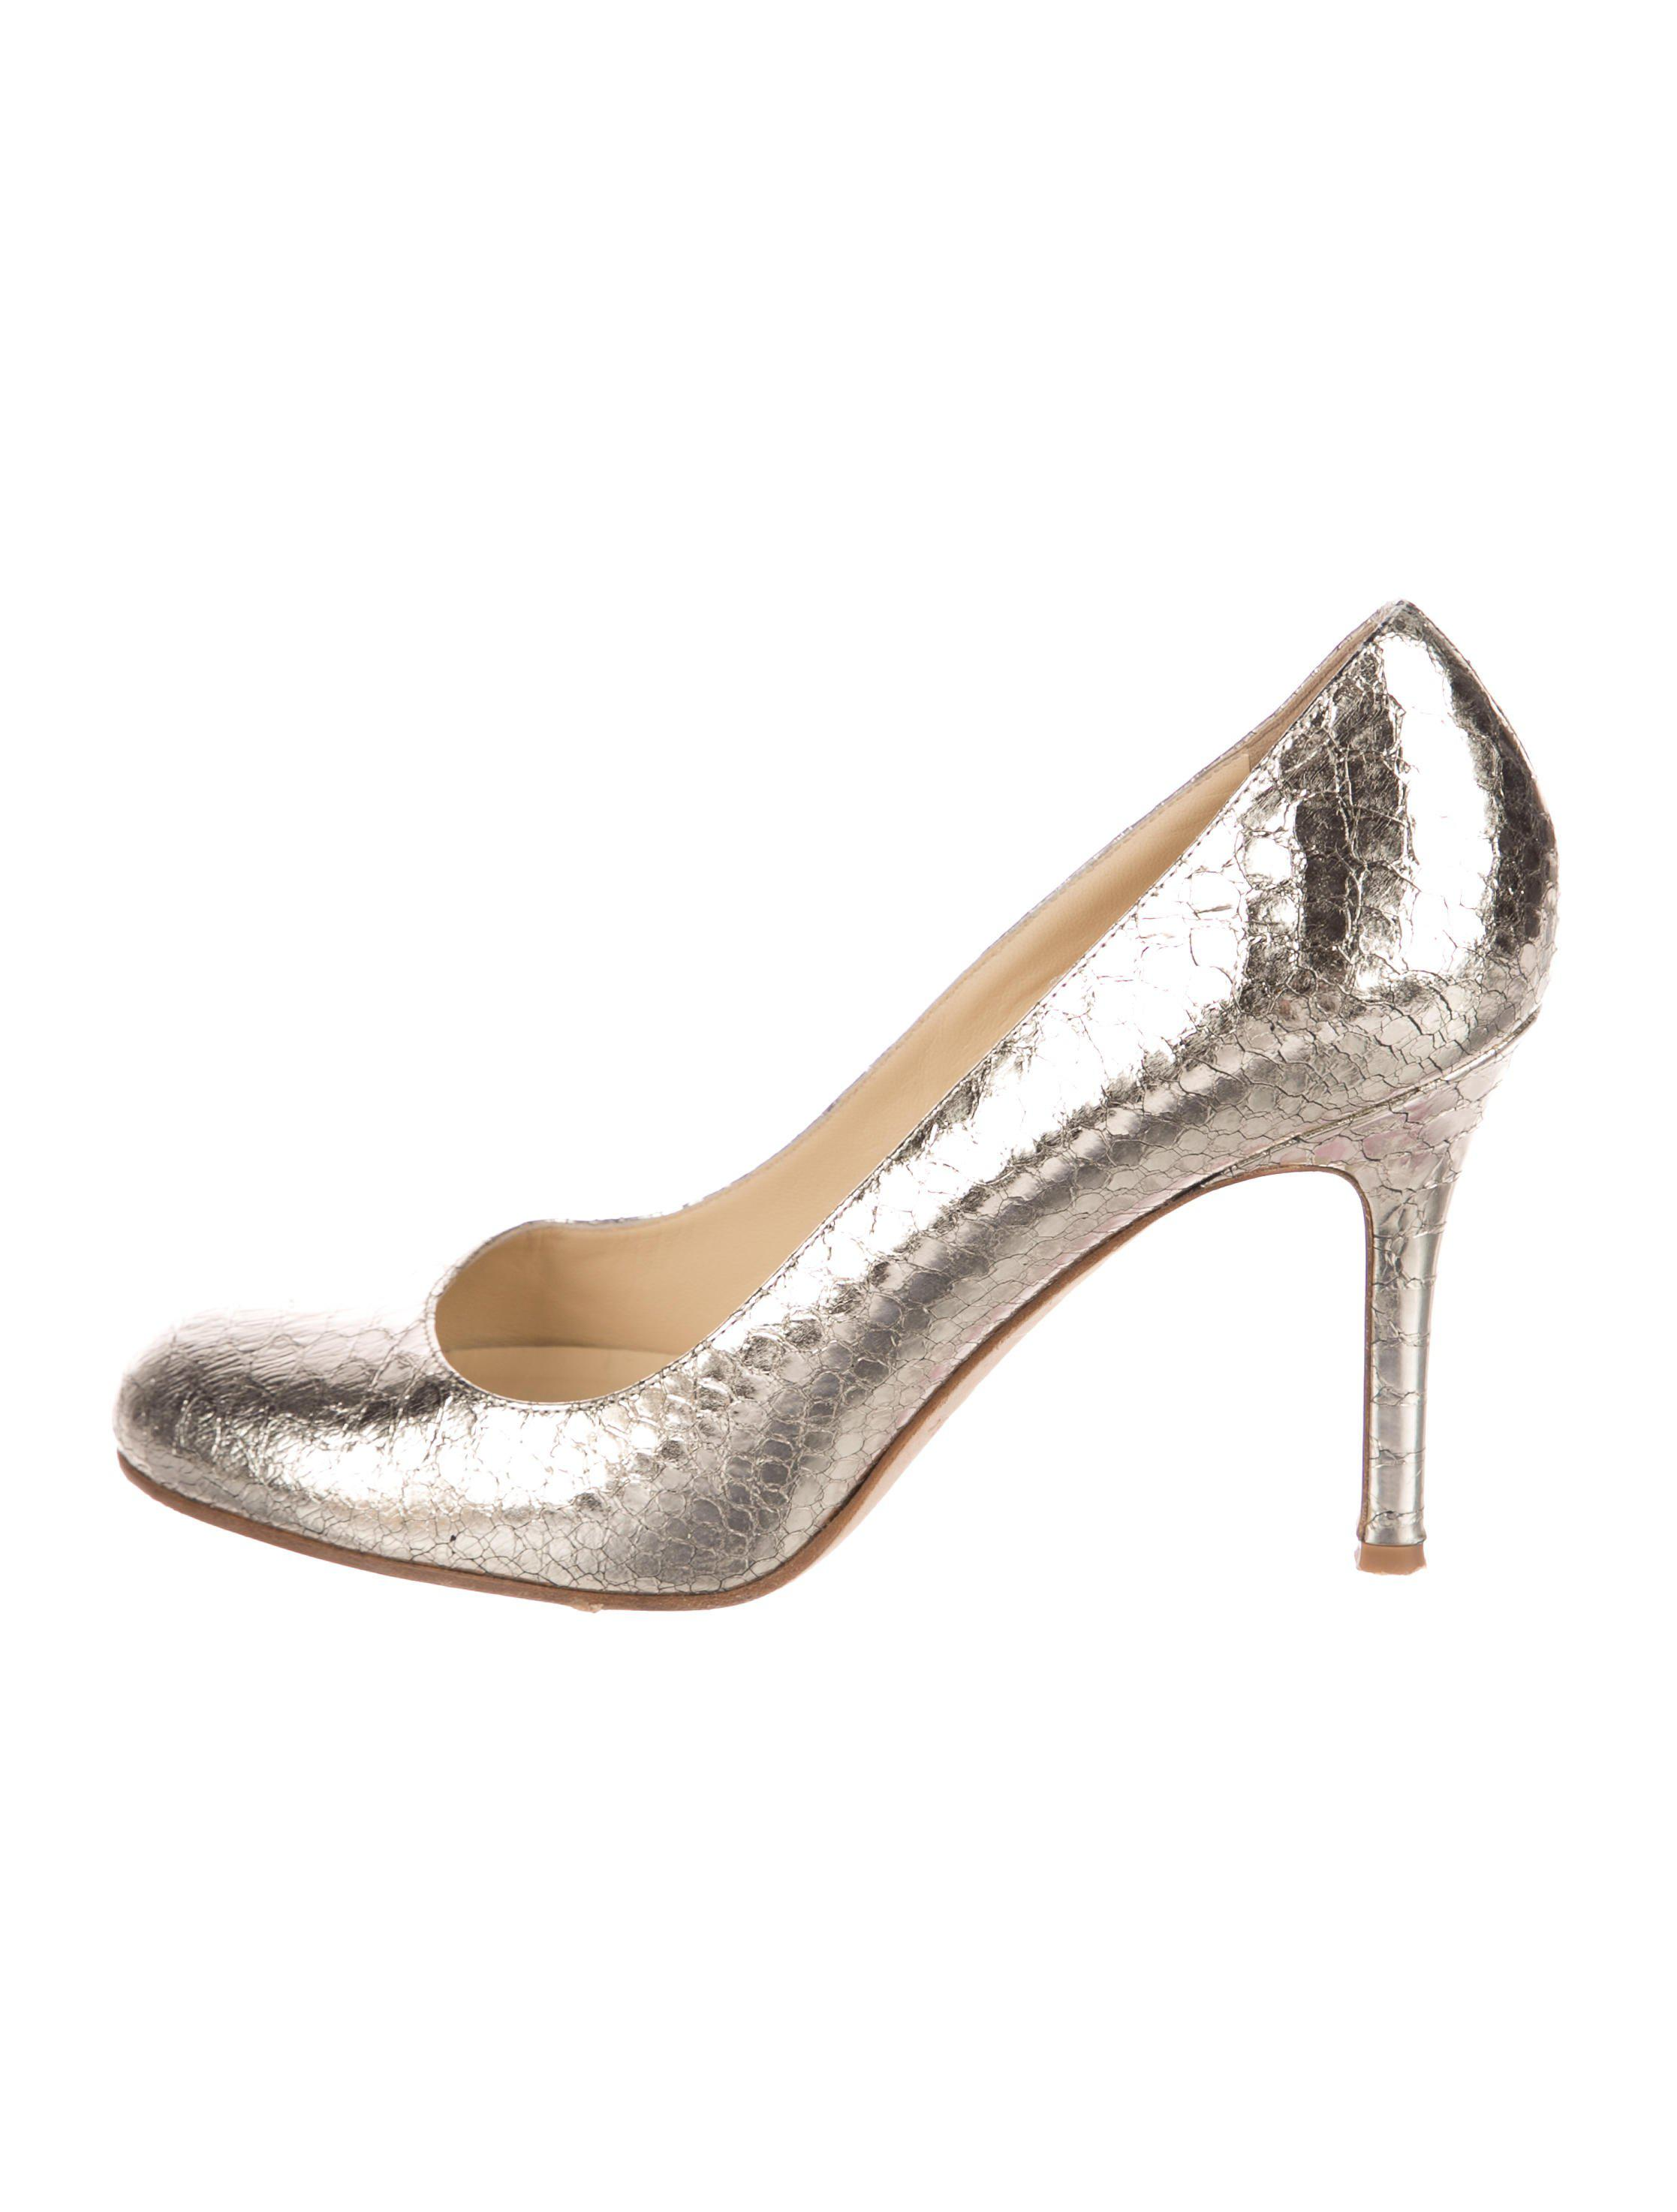 4d82bcca39a Lyst - Kate Spade Embossed Round-toe Pumps Silver in Metallic